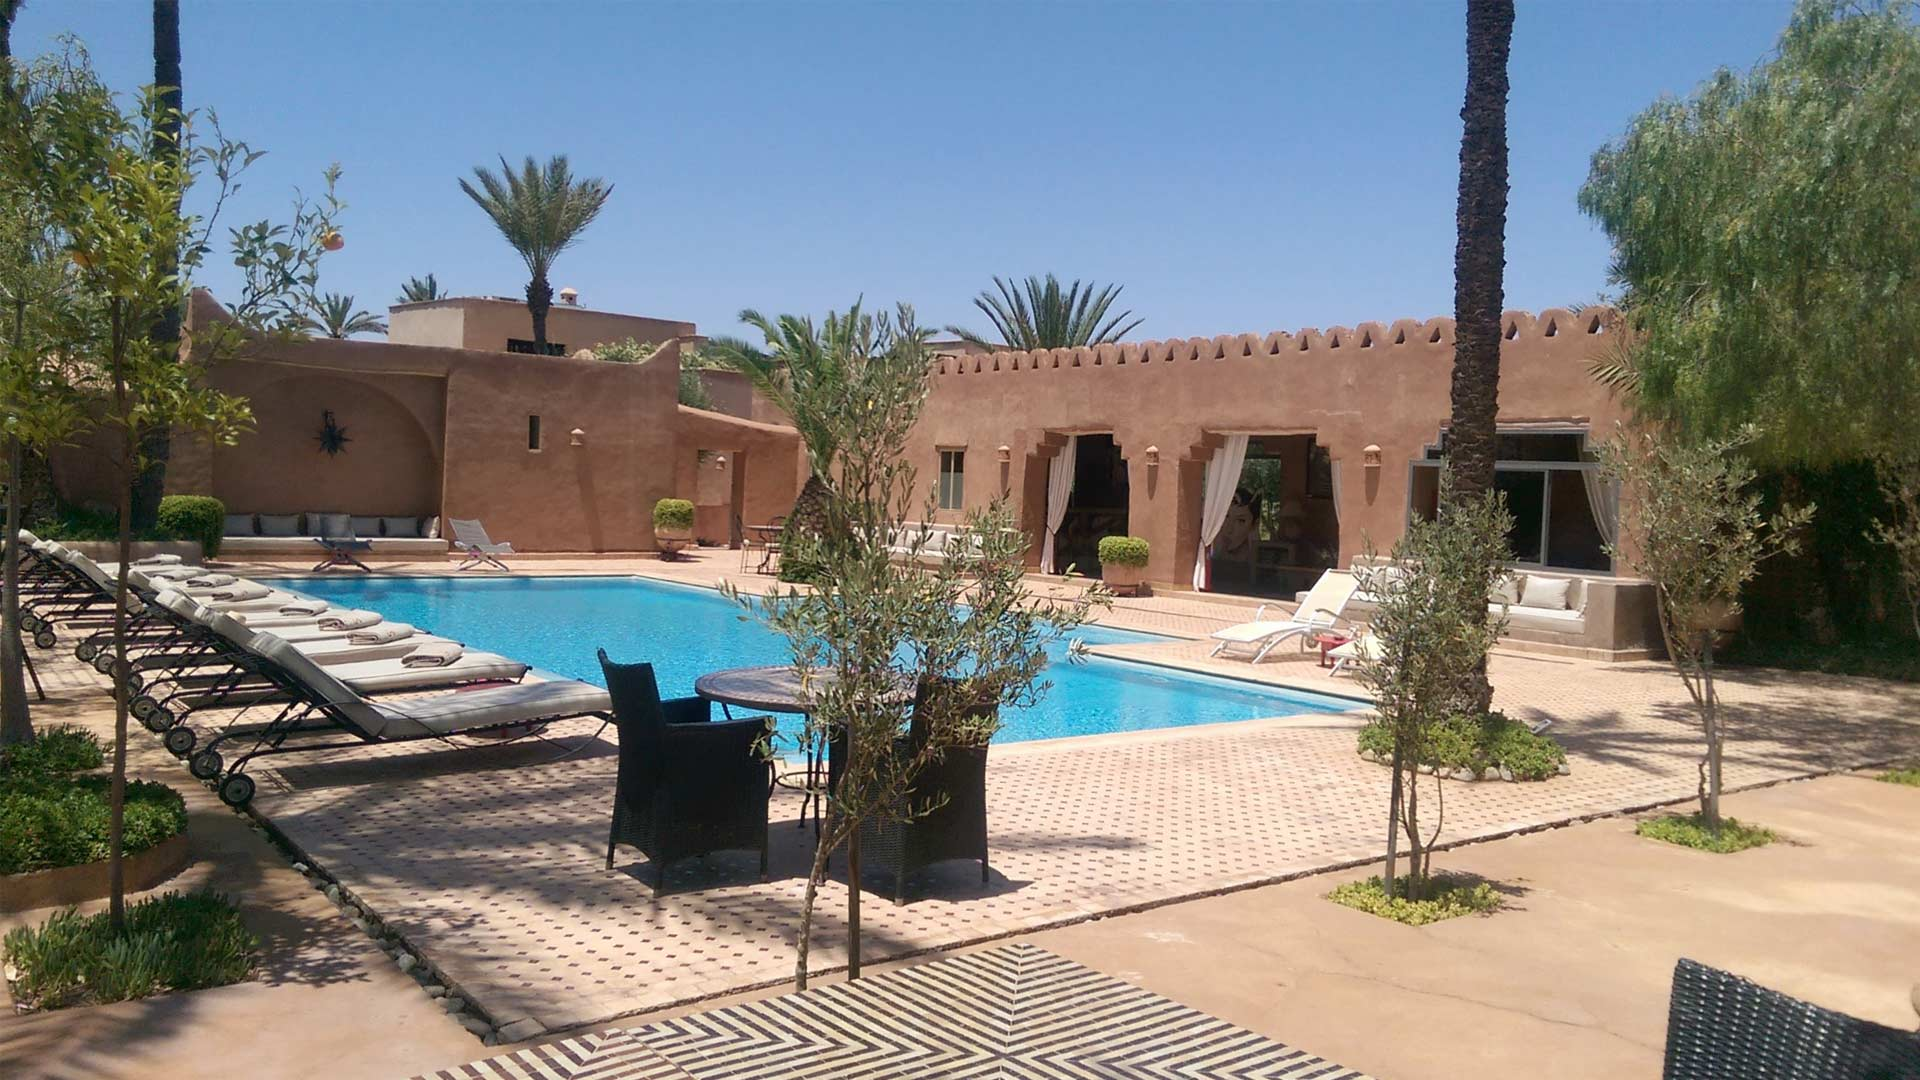 Villa Villa 33, Rental in Marrakech